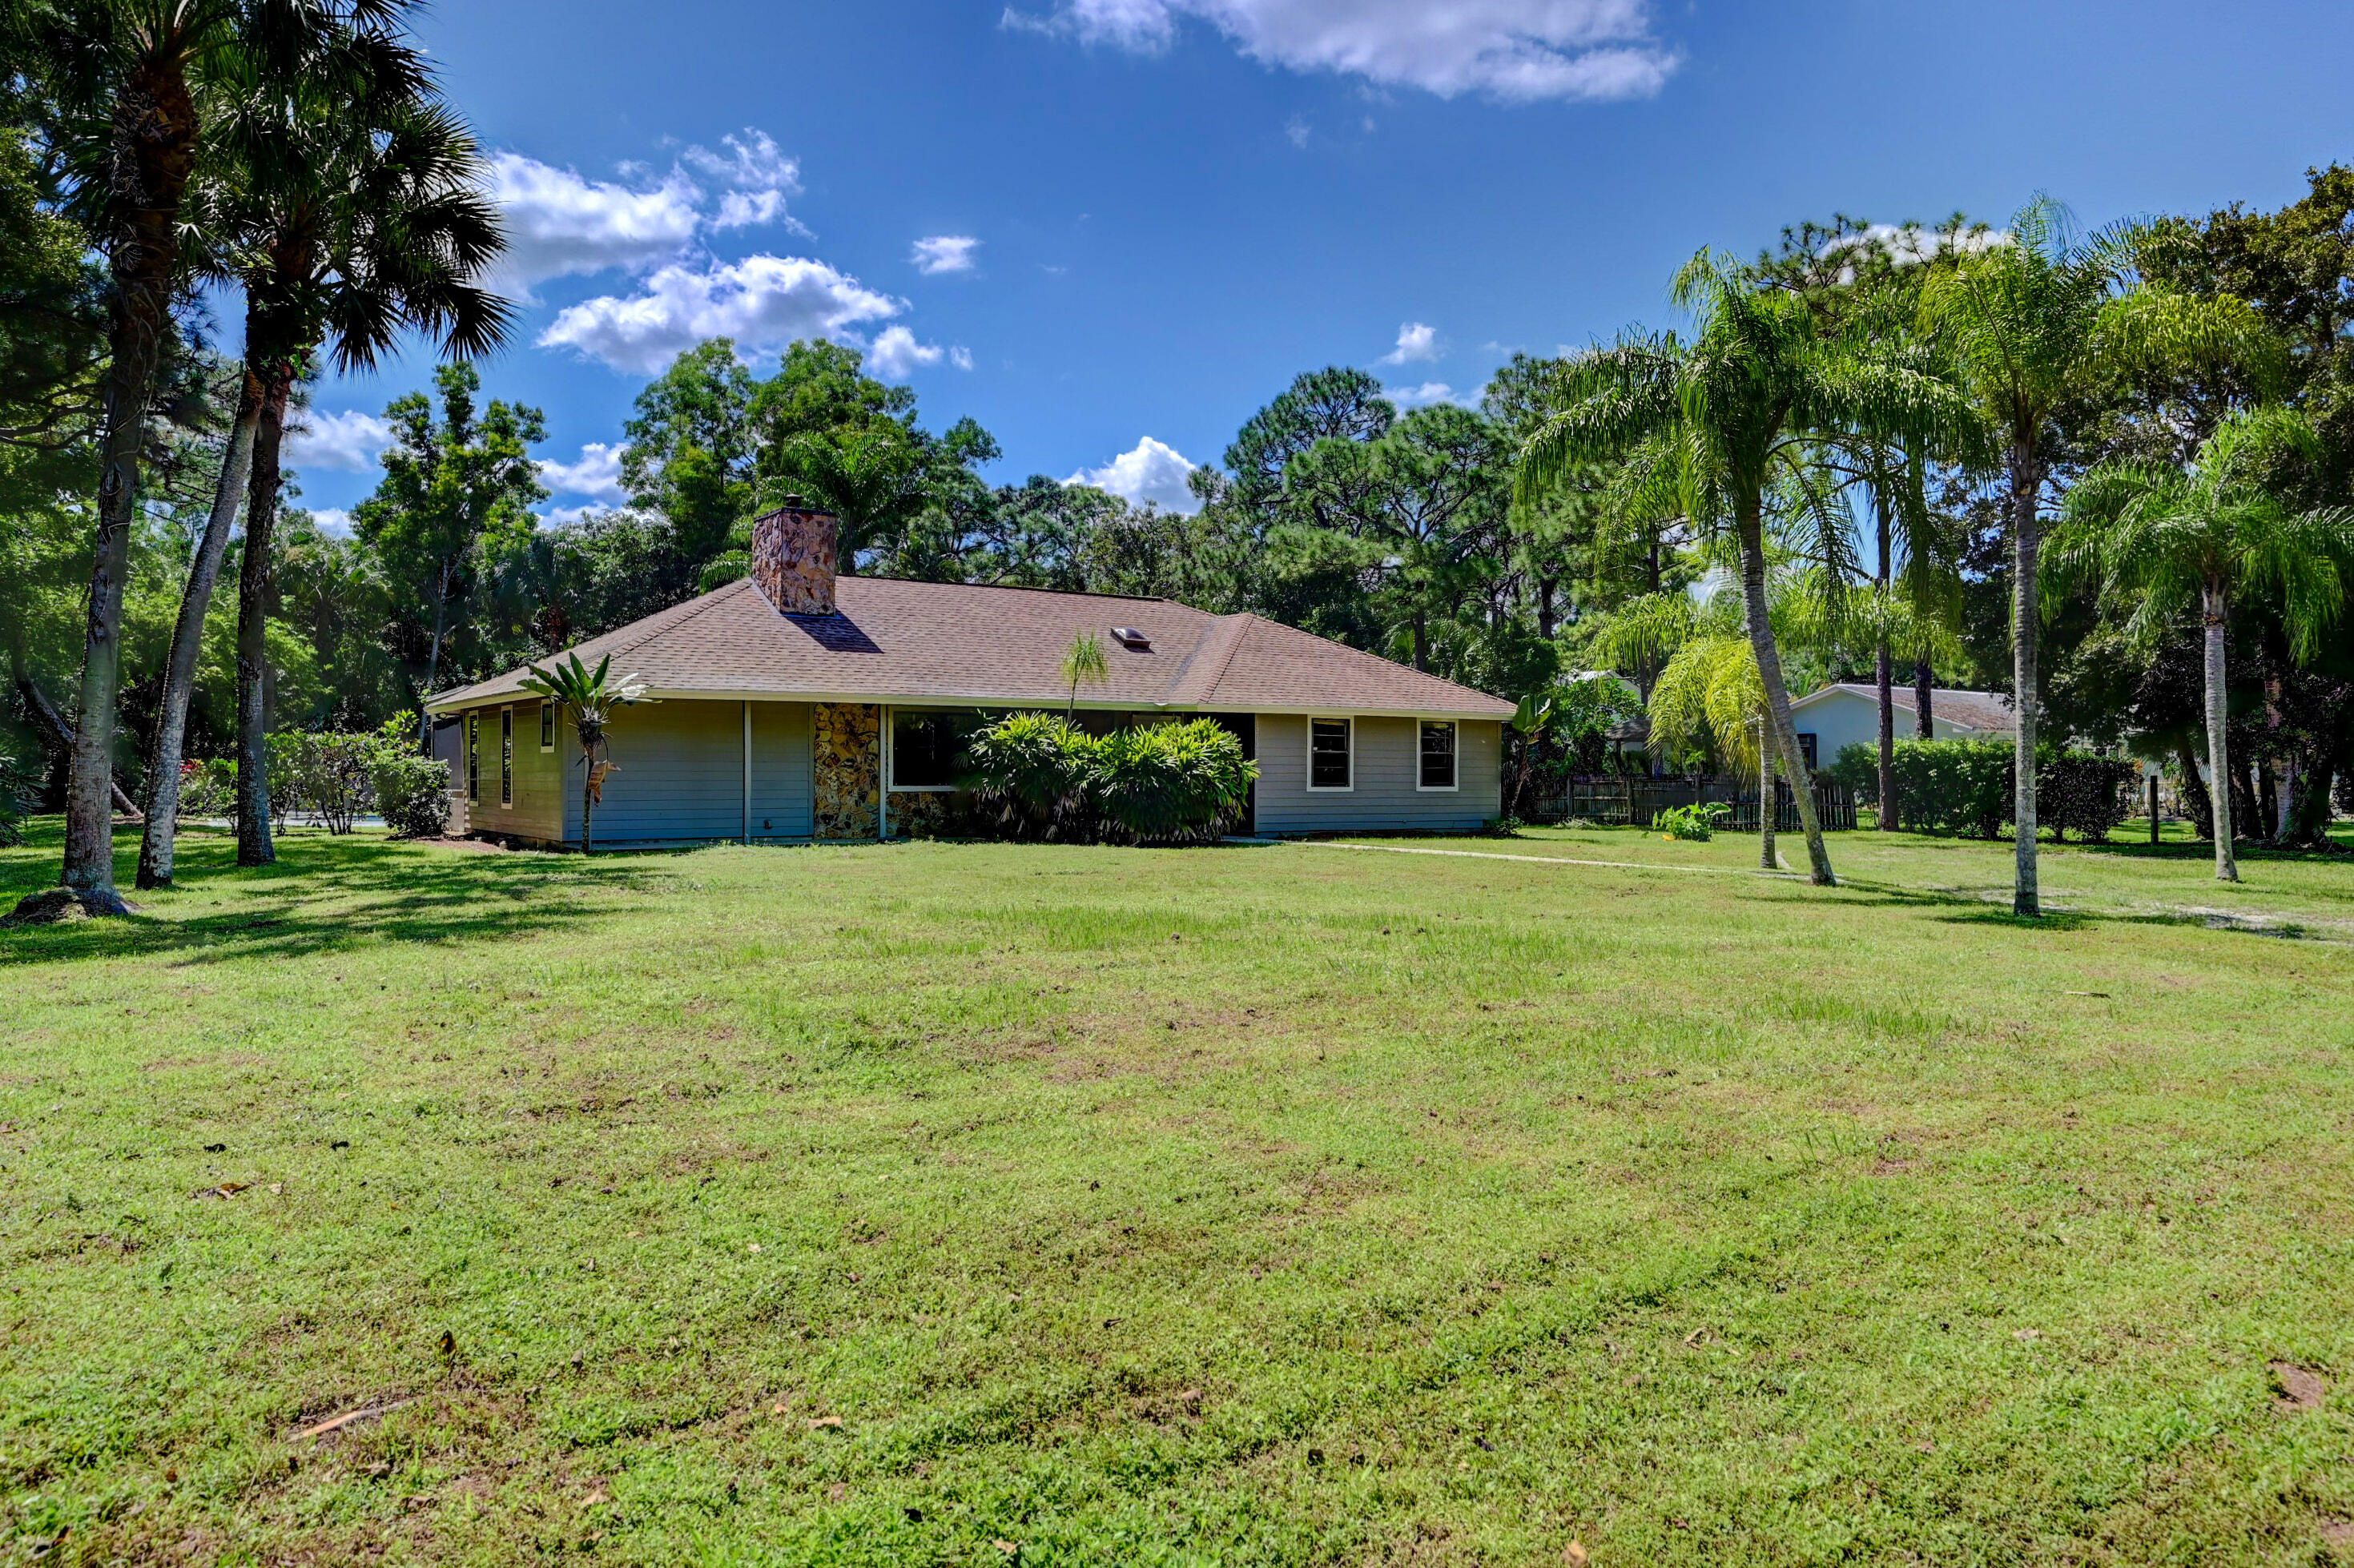 TERRIFIC CUSTOM BUILT POOL HOME, JUST OFF PAVED ROAD. MANY UPGRADES,EXTRAS! GRANITE KITCHEN, REAL NICE 3 BEDROOM 2 BATH SPLIT BEDROOM PLAN FORMAL LIVING ROOM WITH COZY STONE FIREPLACE HUGE SCREENED COVERED PORCH OVERLOOKS OVERSIZED POOL APROX 34'X 17' LOCATED ON LUSH 1.2 ACRES FULLY FENCED SPACIOUS COUNTRY LIVING !!! LARGE YARD BOTH FRONT AND BACK. BASE IS 1739 SQ. FT.; POSSIBLE 2480 UNDER AIR; TOTAL SQ. FT 2830 SQ. FT. 5 min drive from turnpike.. Ready to move. Freshly painted inside outside. New flooring for the entire house. New baseboard.